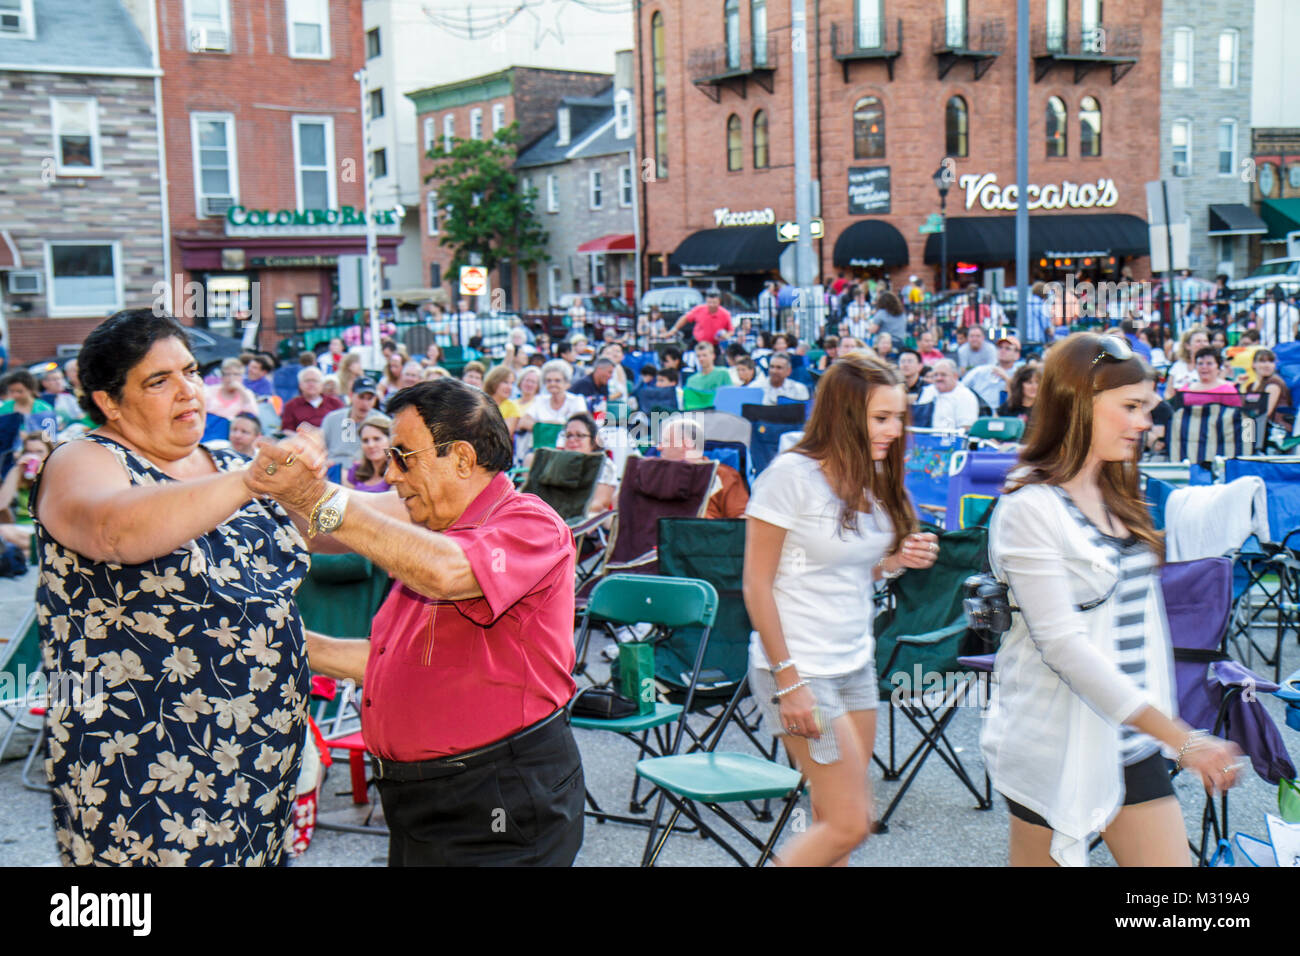 Baltimore Maryland Little Italy ethnic neighborhood working class community event crowd free outdoor movie lounge - Stock Image